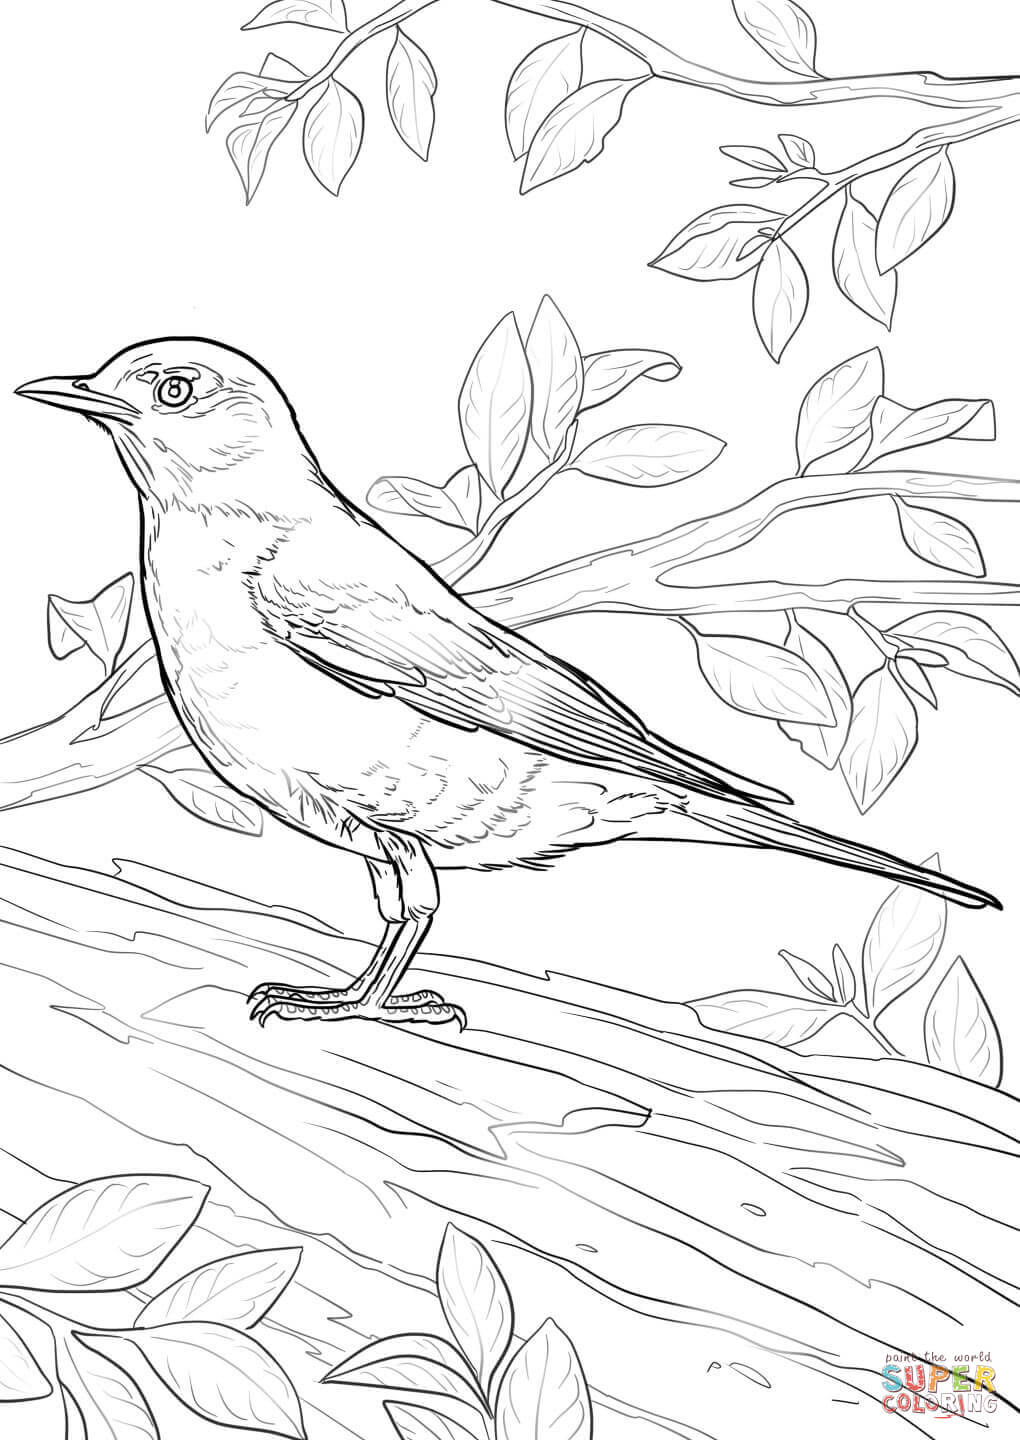 robin coloring free printable icecream art projects character slippers puppet party scary coloring pages American Robin Coloring Page